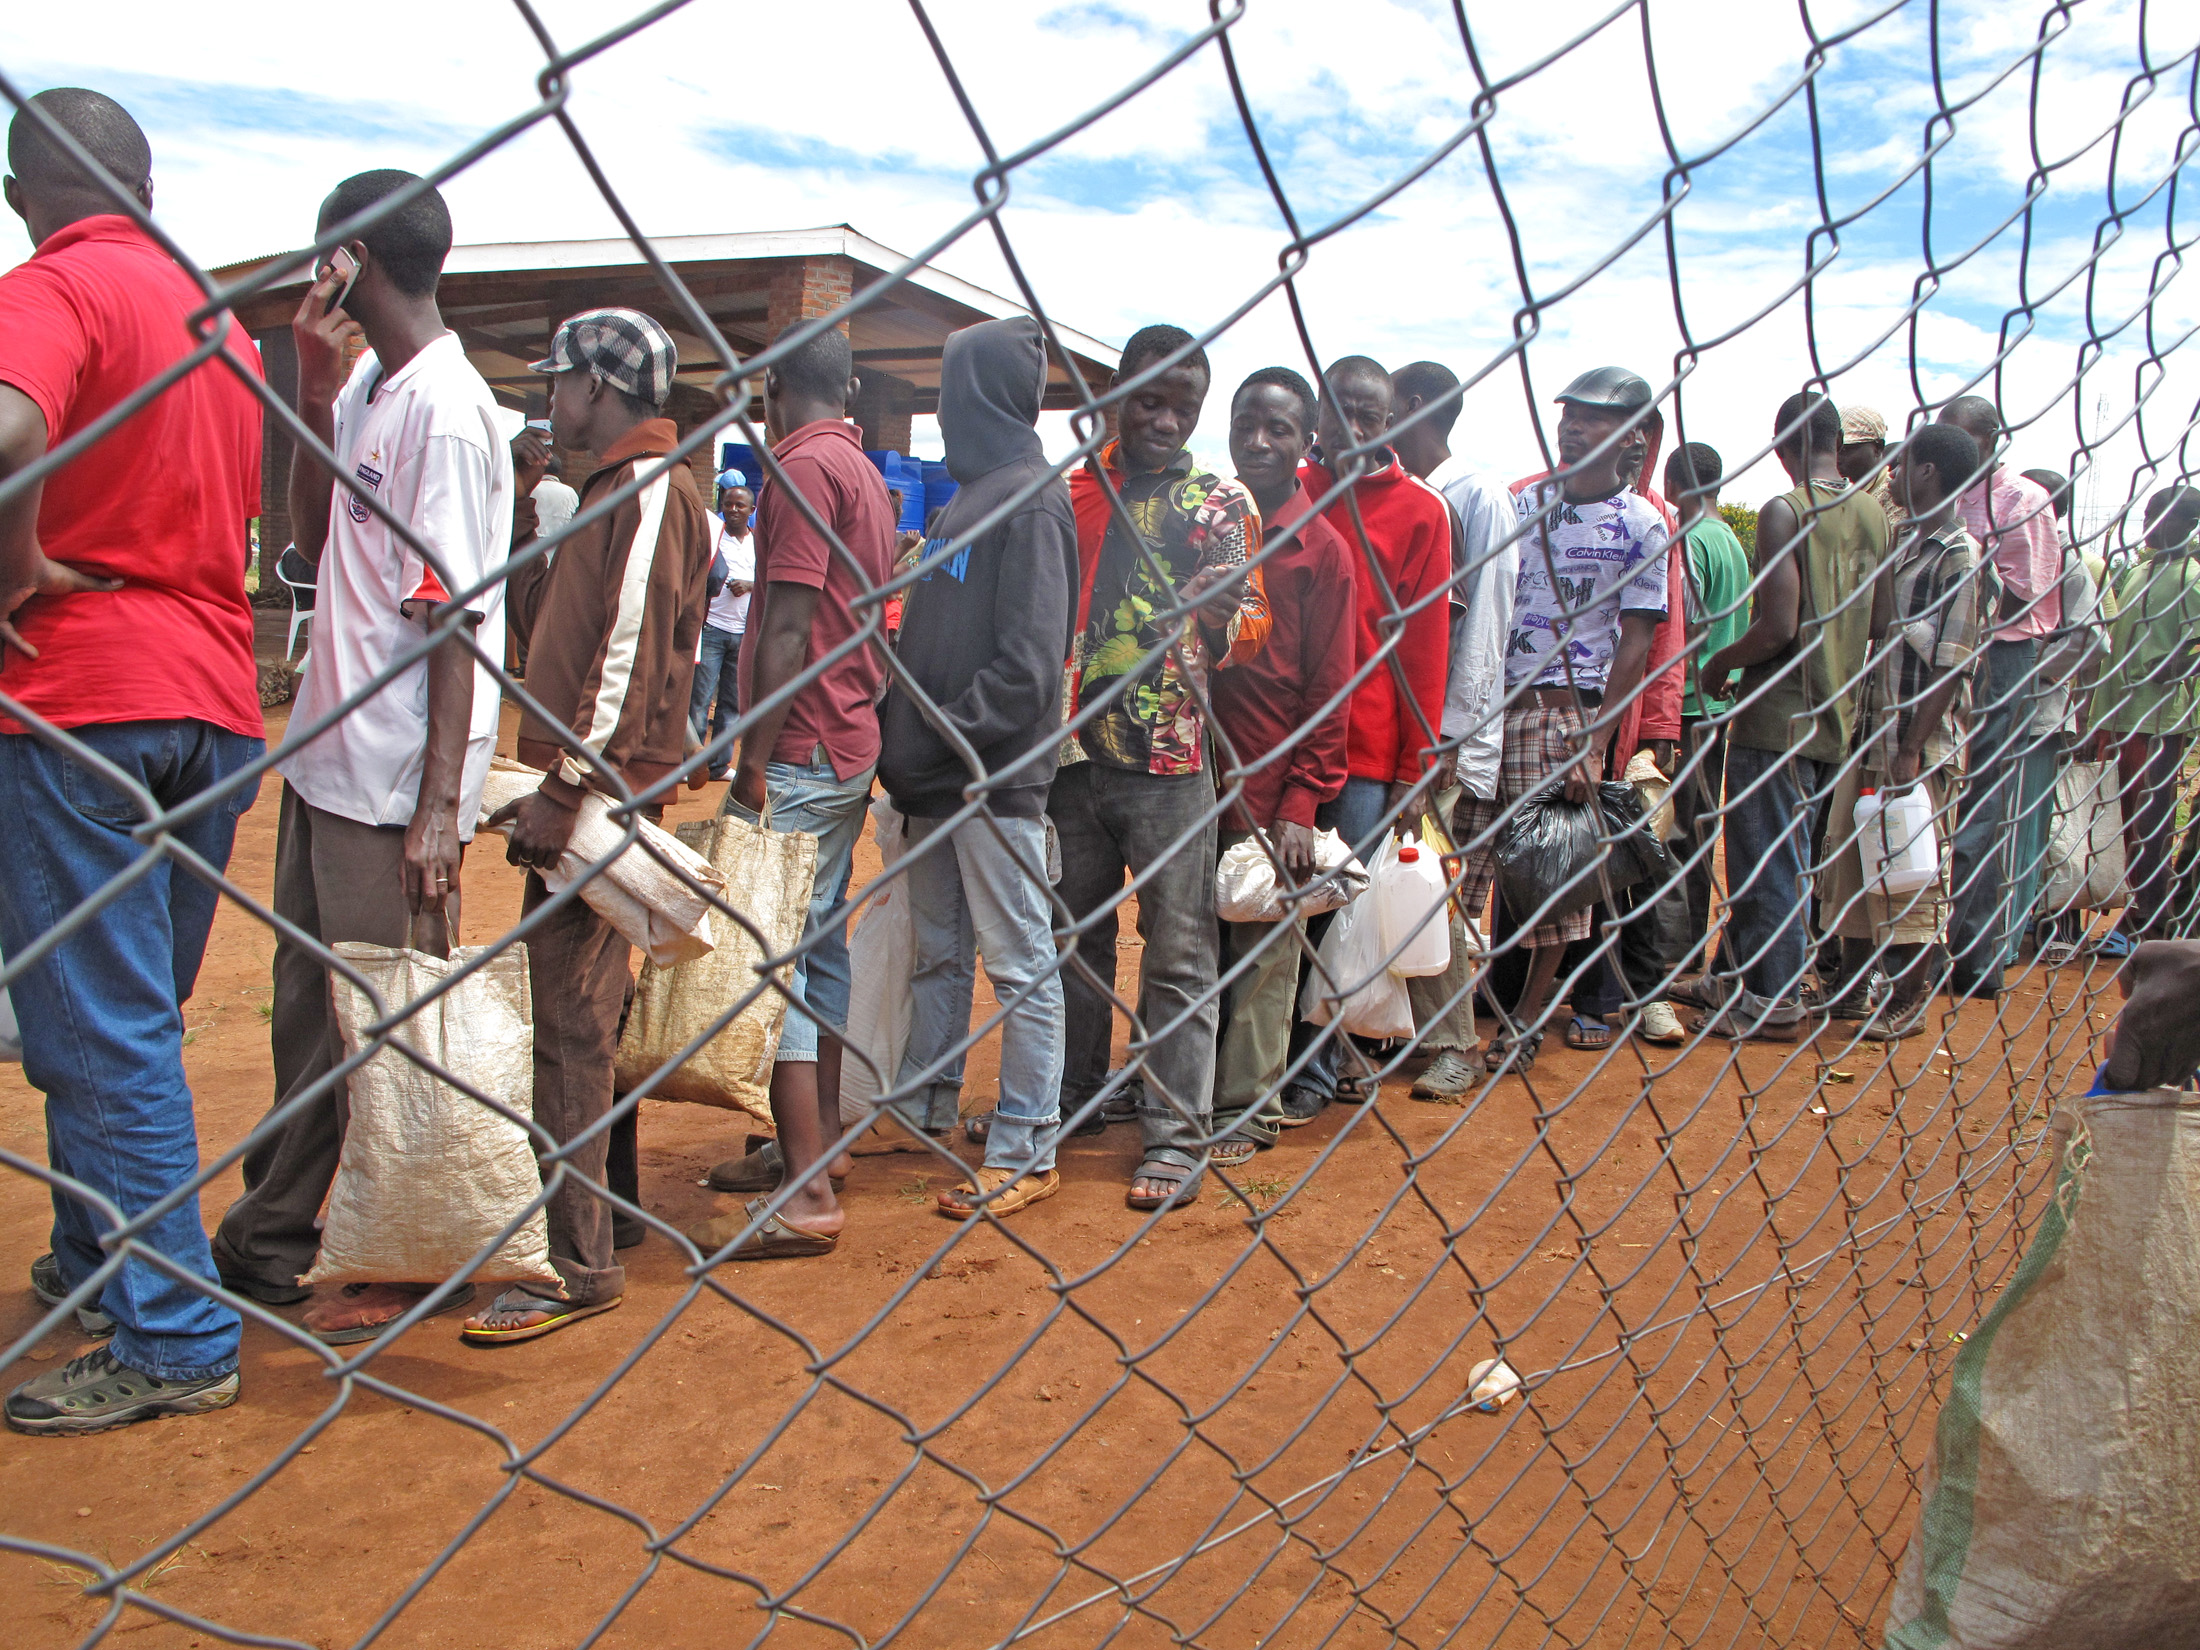 Refugees at Dzaleka camp in Malawi wait in line to collect their monthly food rations which were cut by half in March 2012 due to a funding shortfall